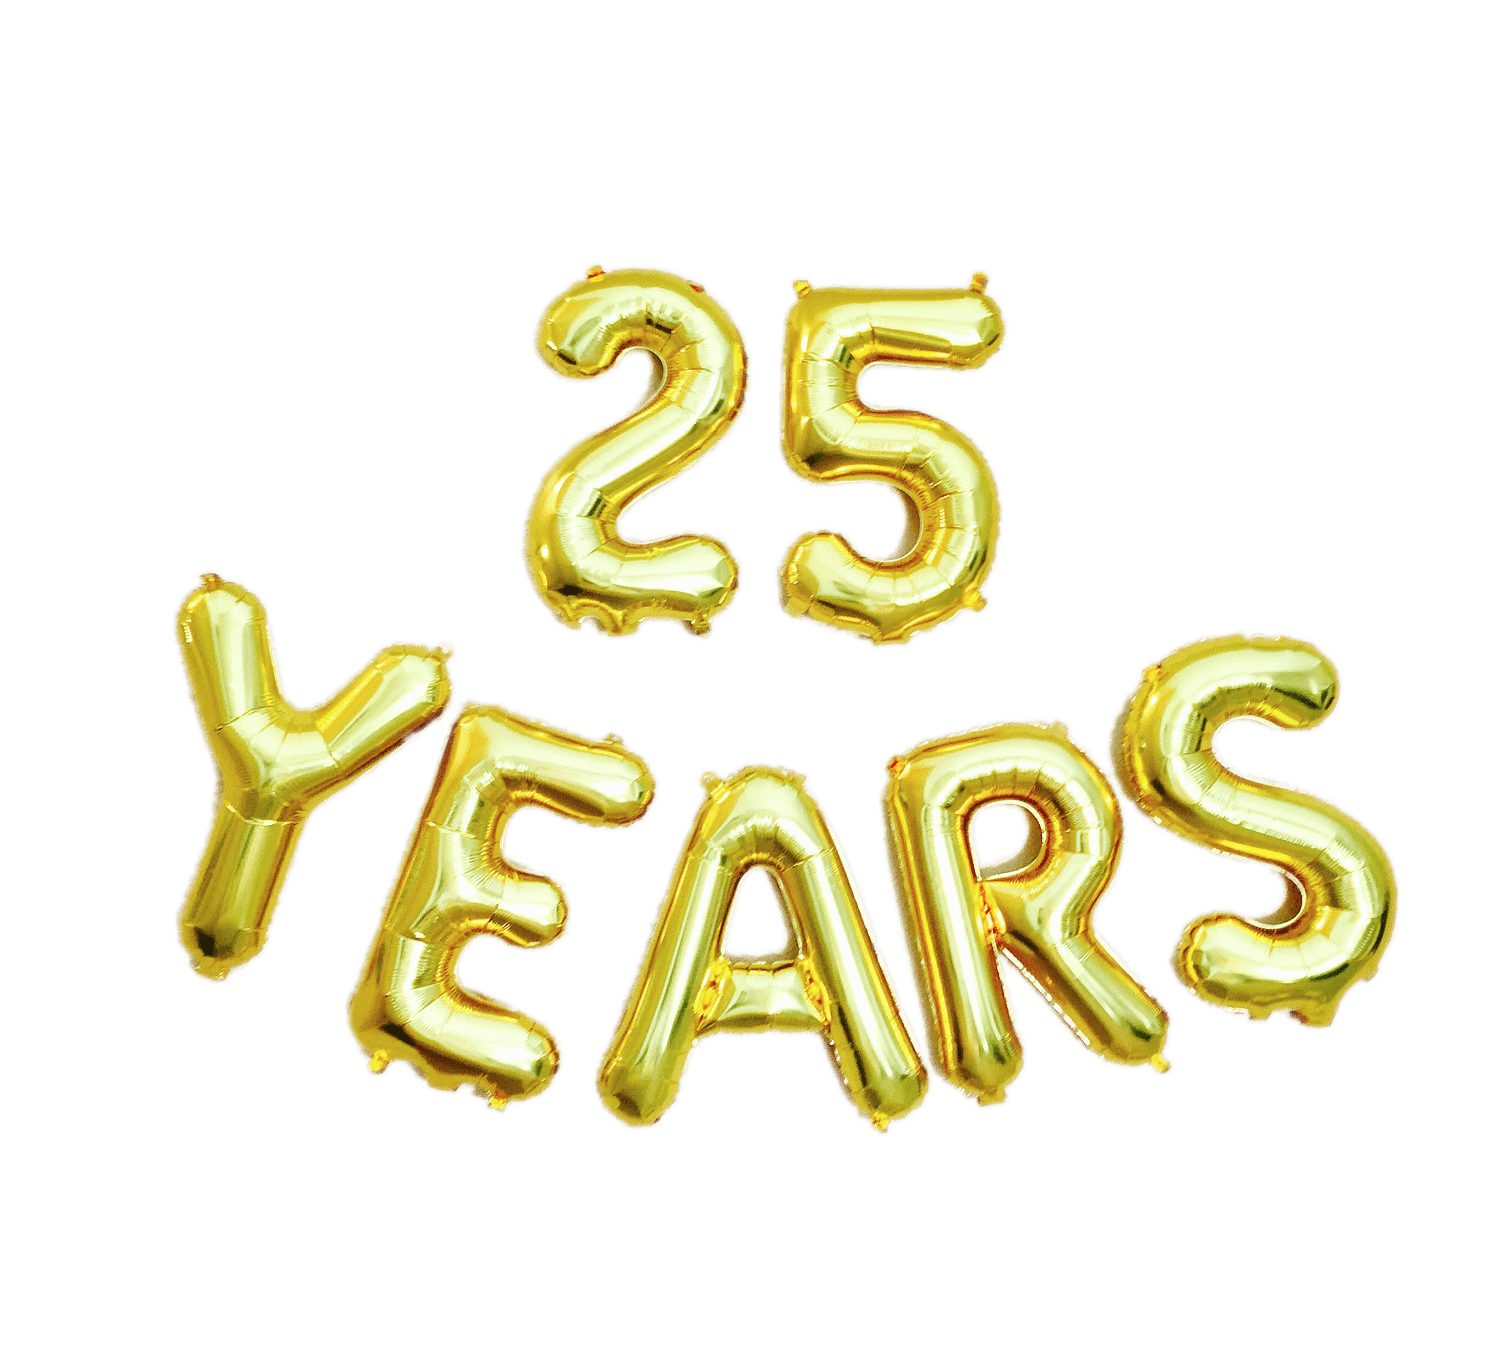 25 Years Letter Balloons transparent PNG.